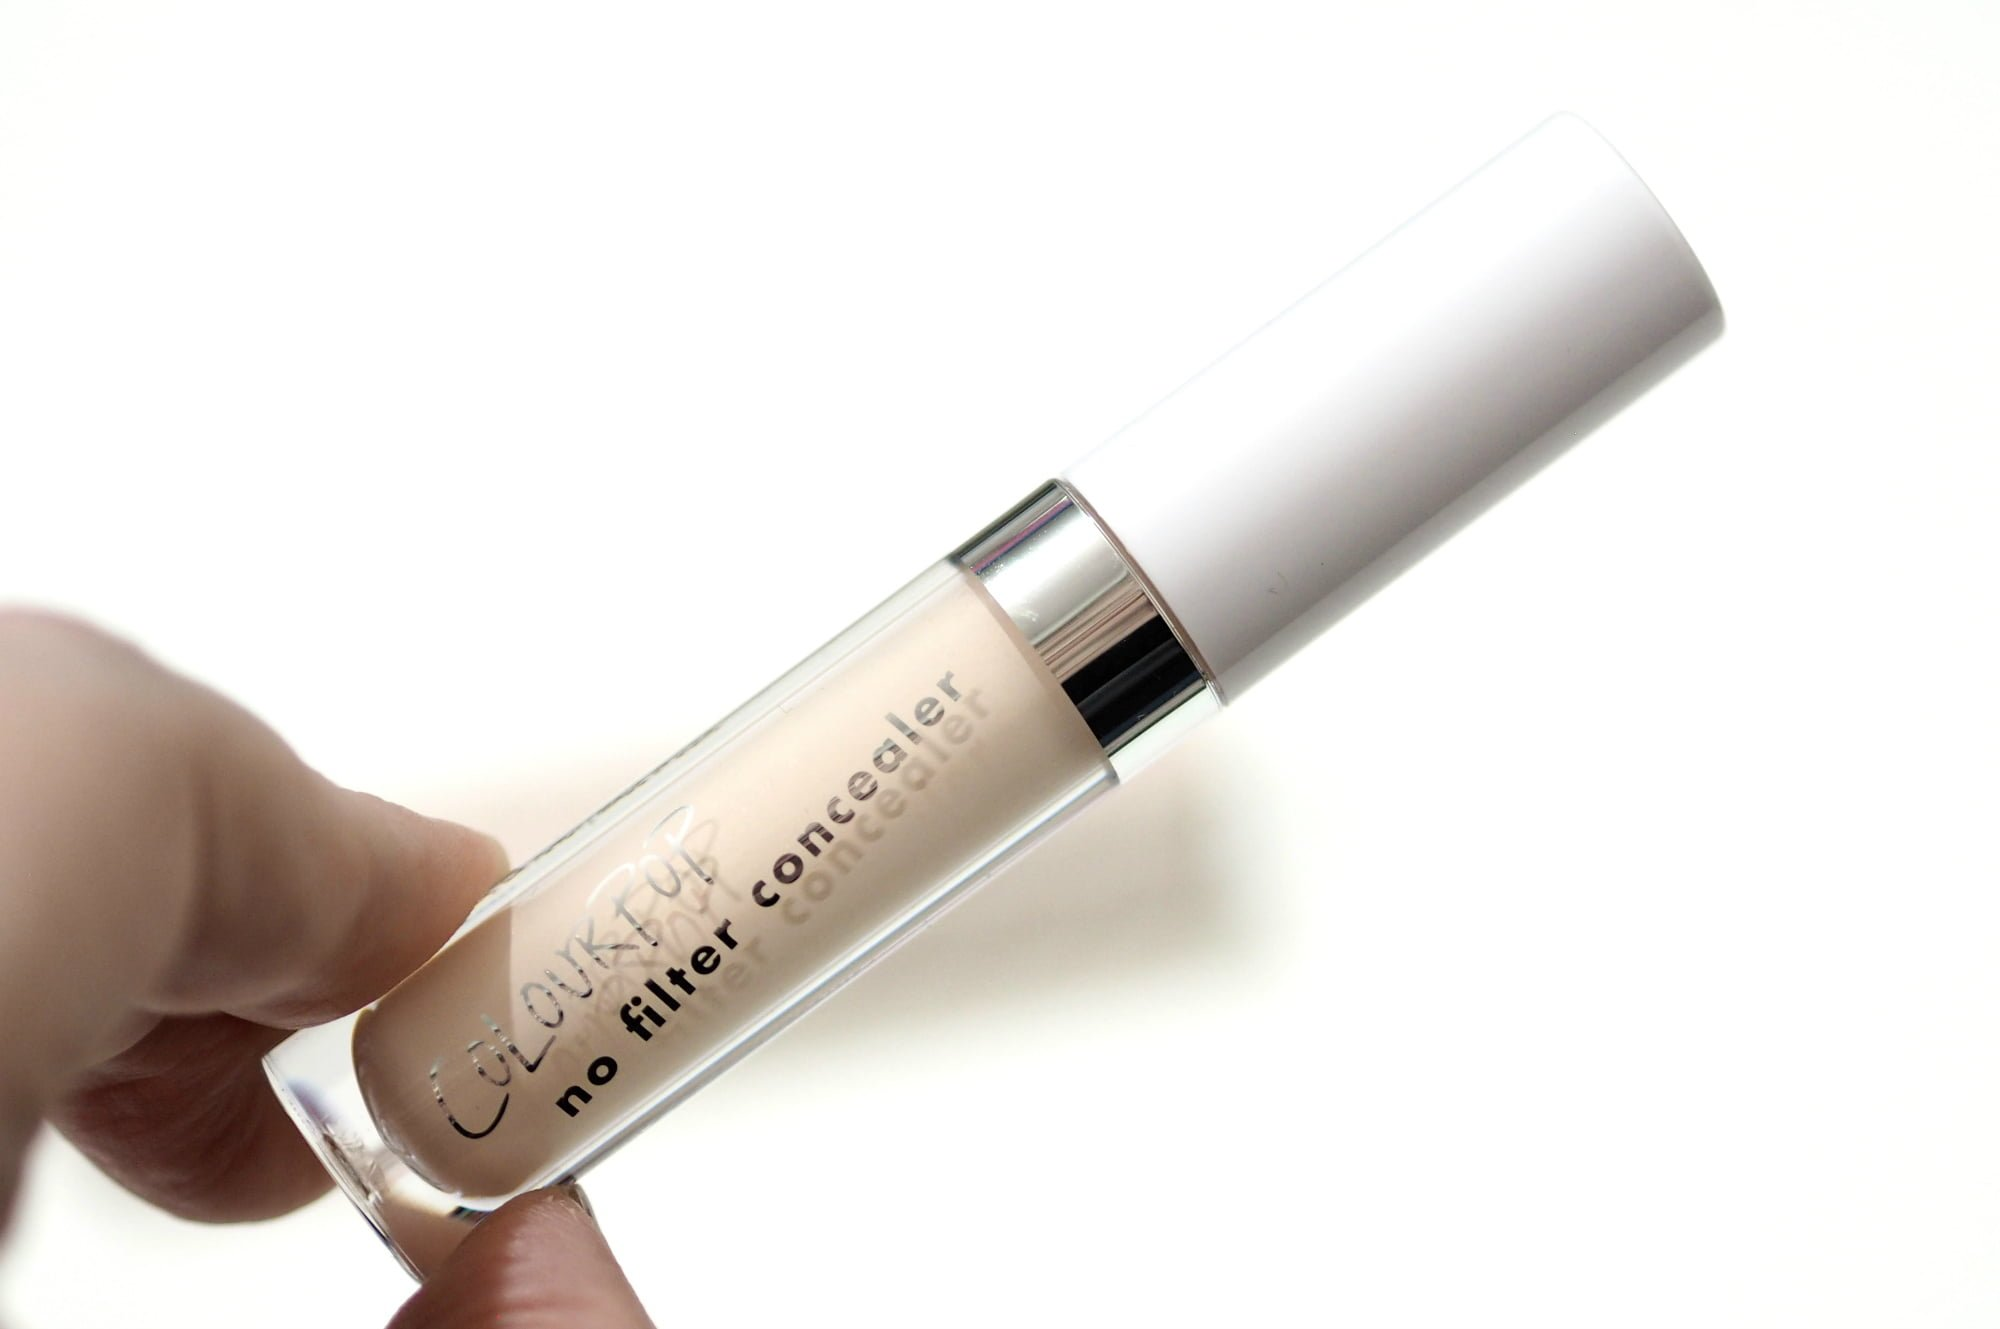 ColourPop No Filter Concealer Review and Swatches in shade Fair 02